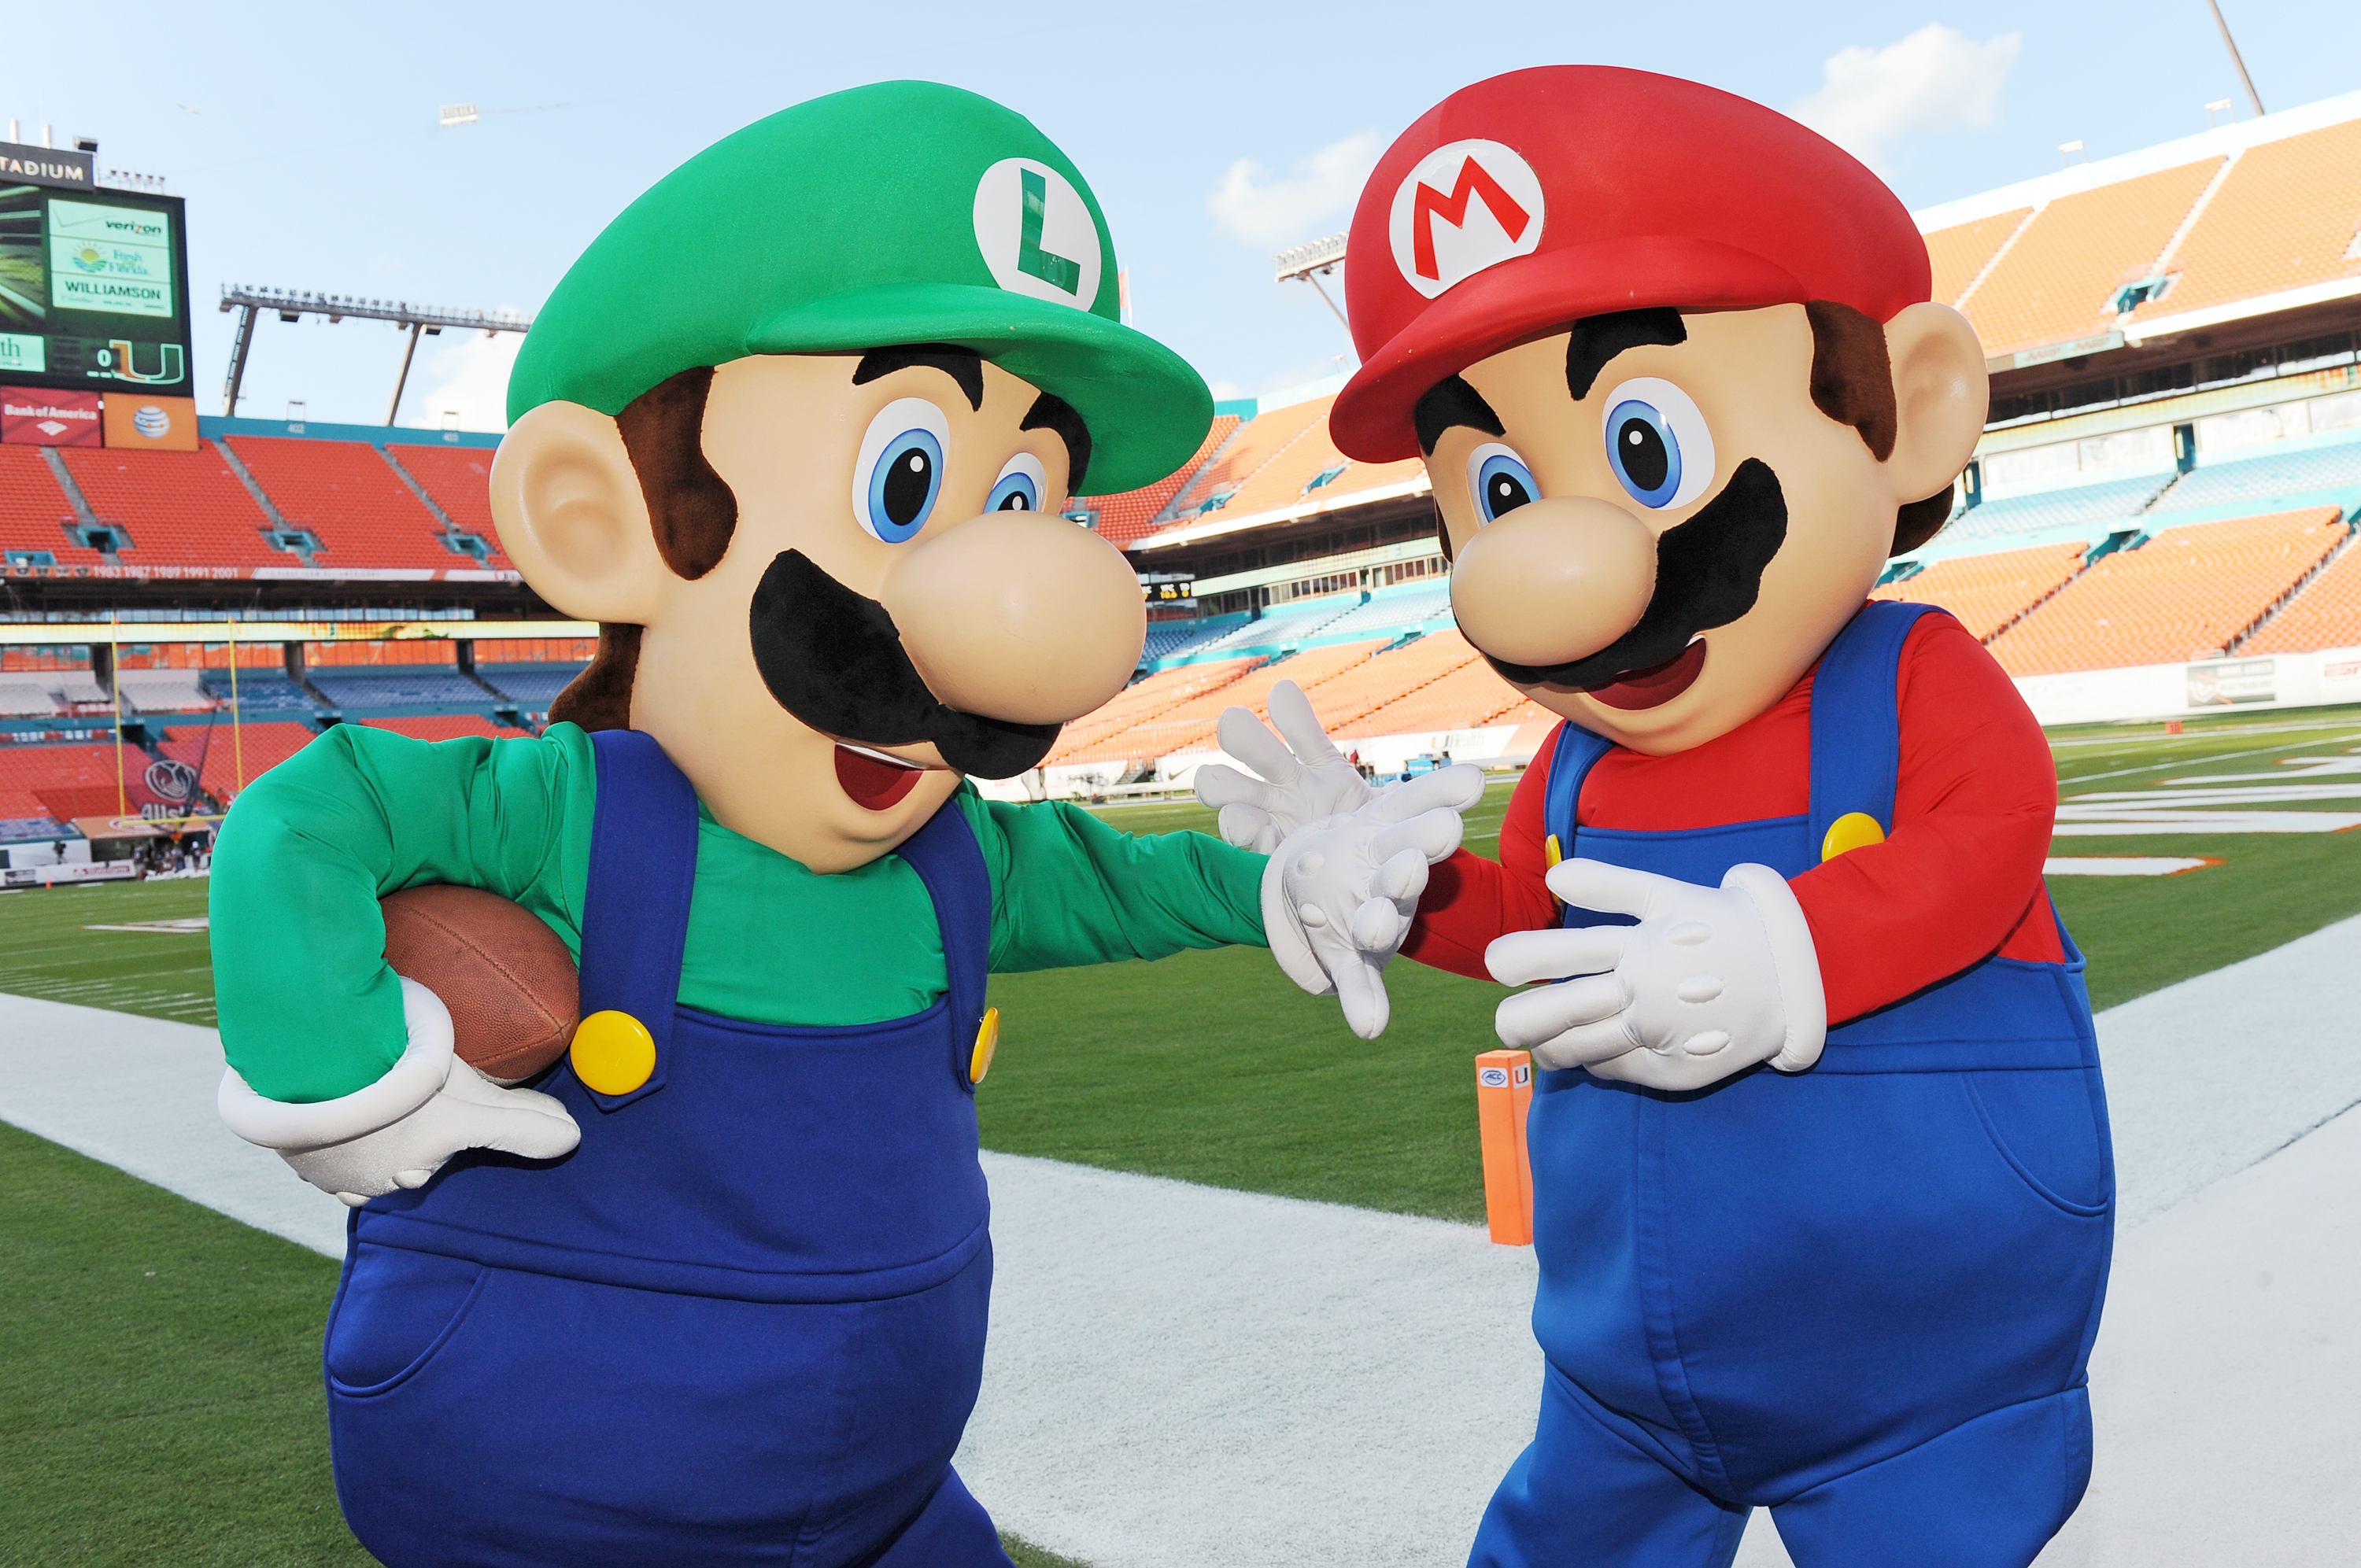 Mario and Luigi take the field at Sun Life Stadium before the face-off between Florida State and University of Miami on Nov. 15, 2014.